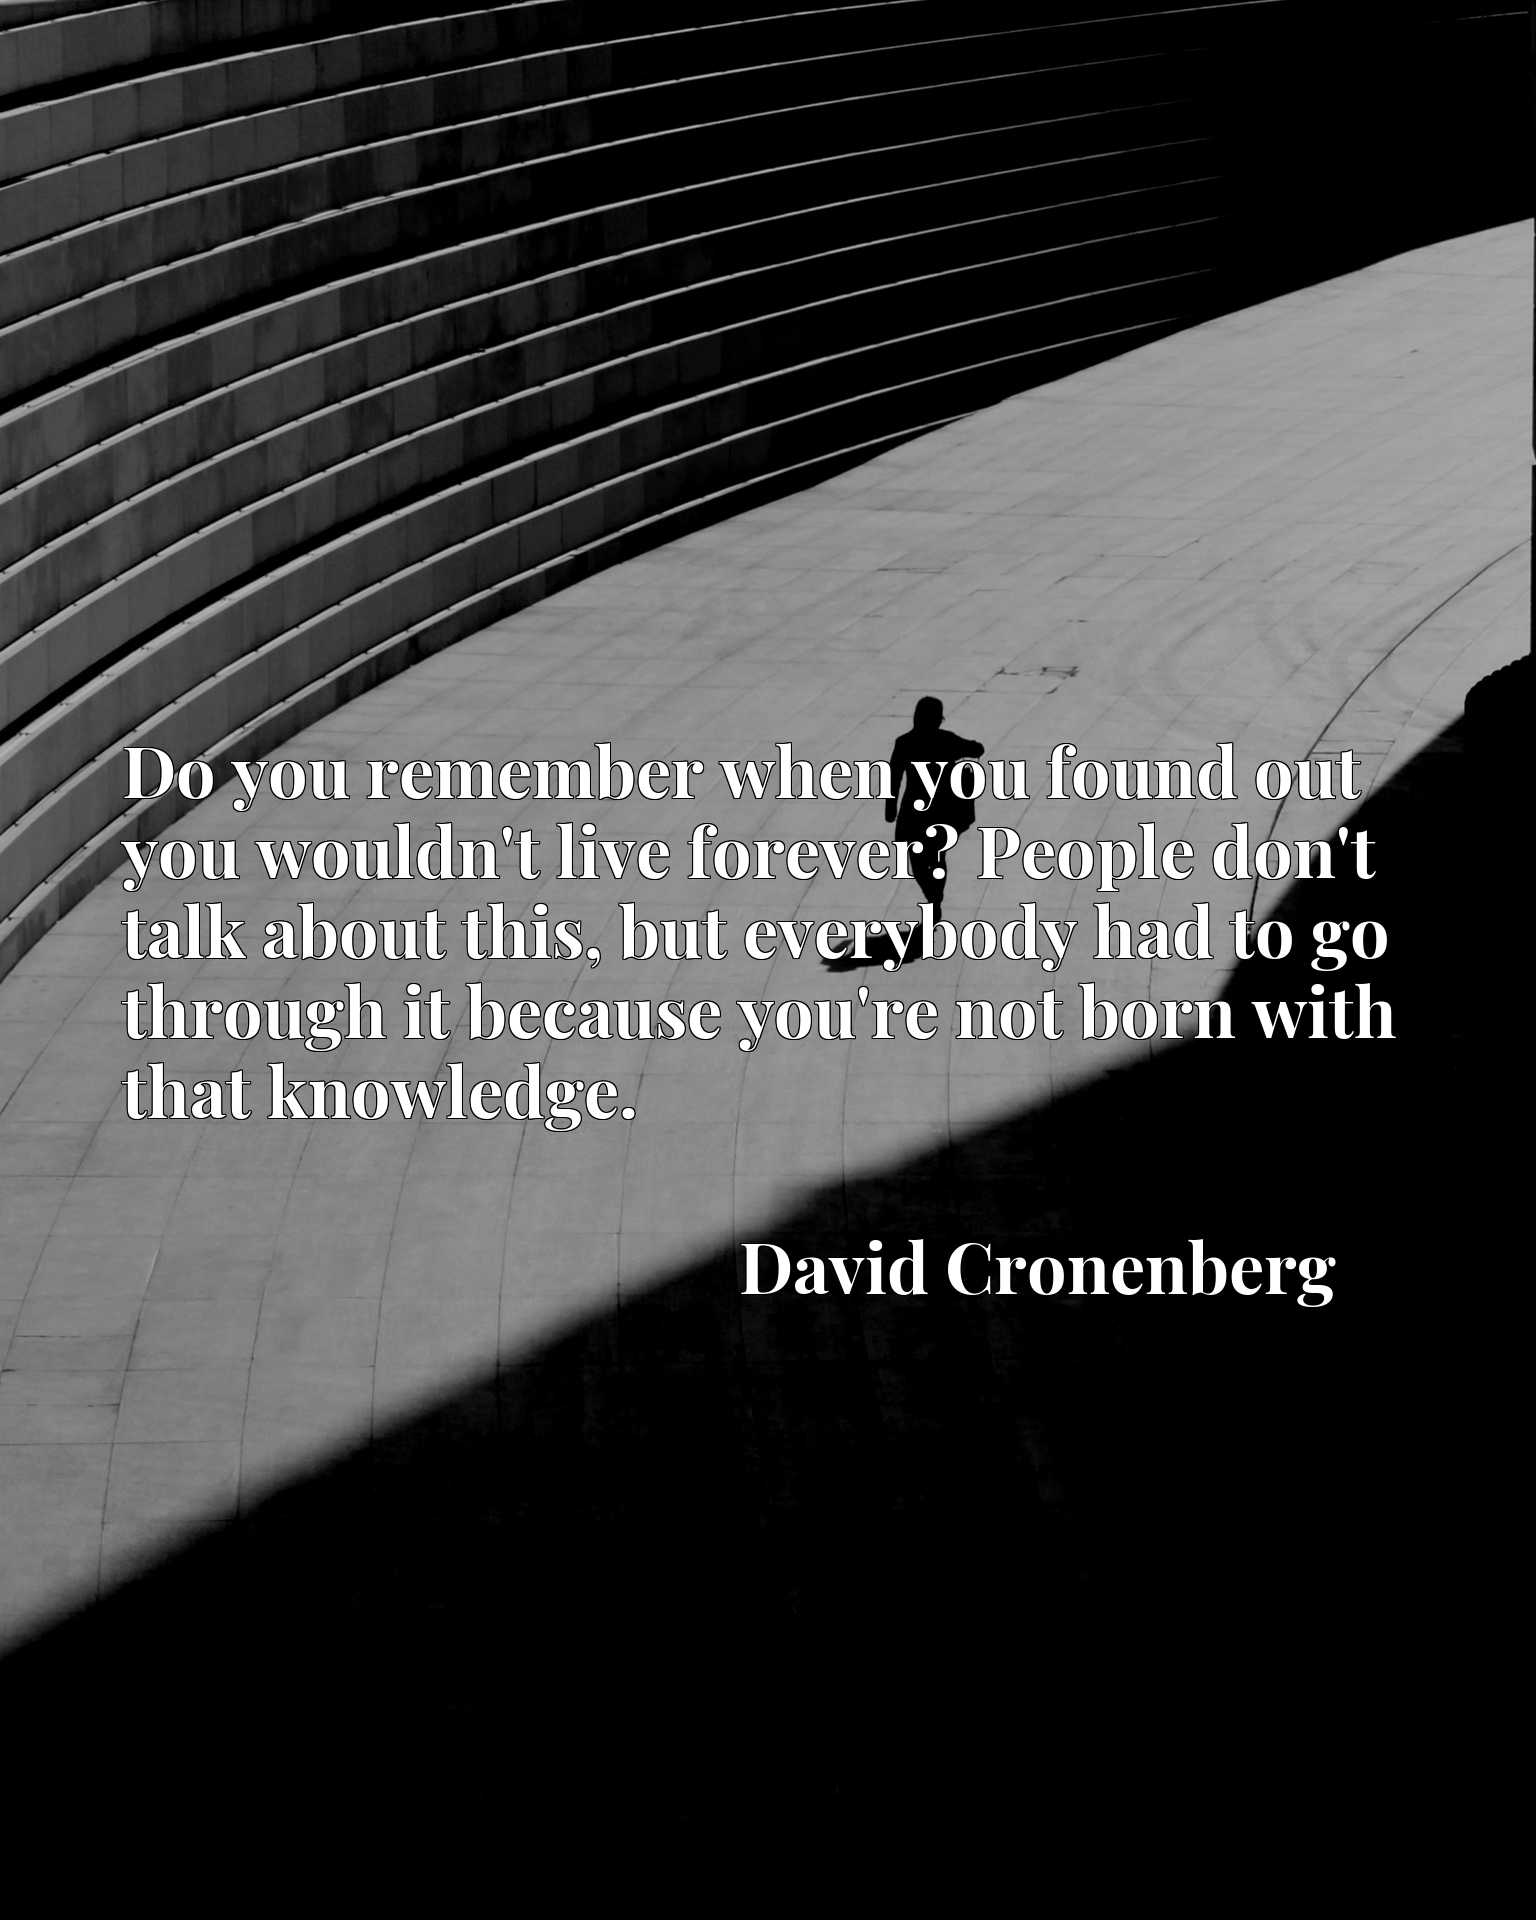 Quote Picture :Do you remember when you found out you wouldn't live forever? People don't talk about this, but everybody had to go through it because you're not born with that knowledge.